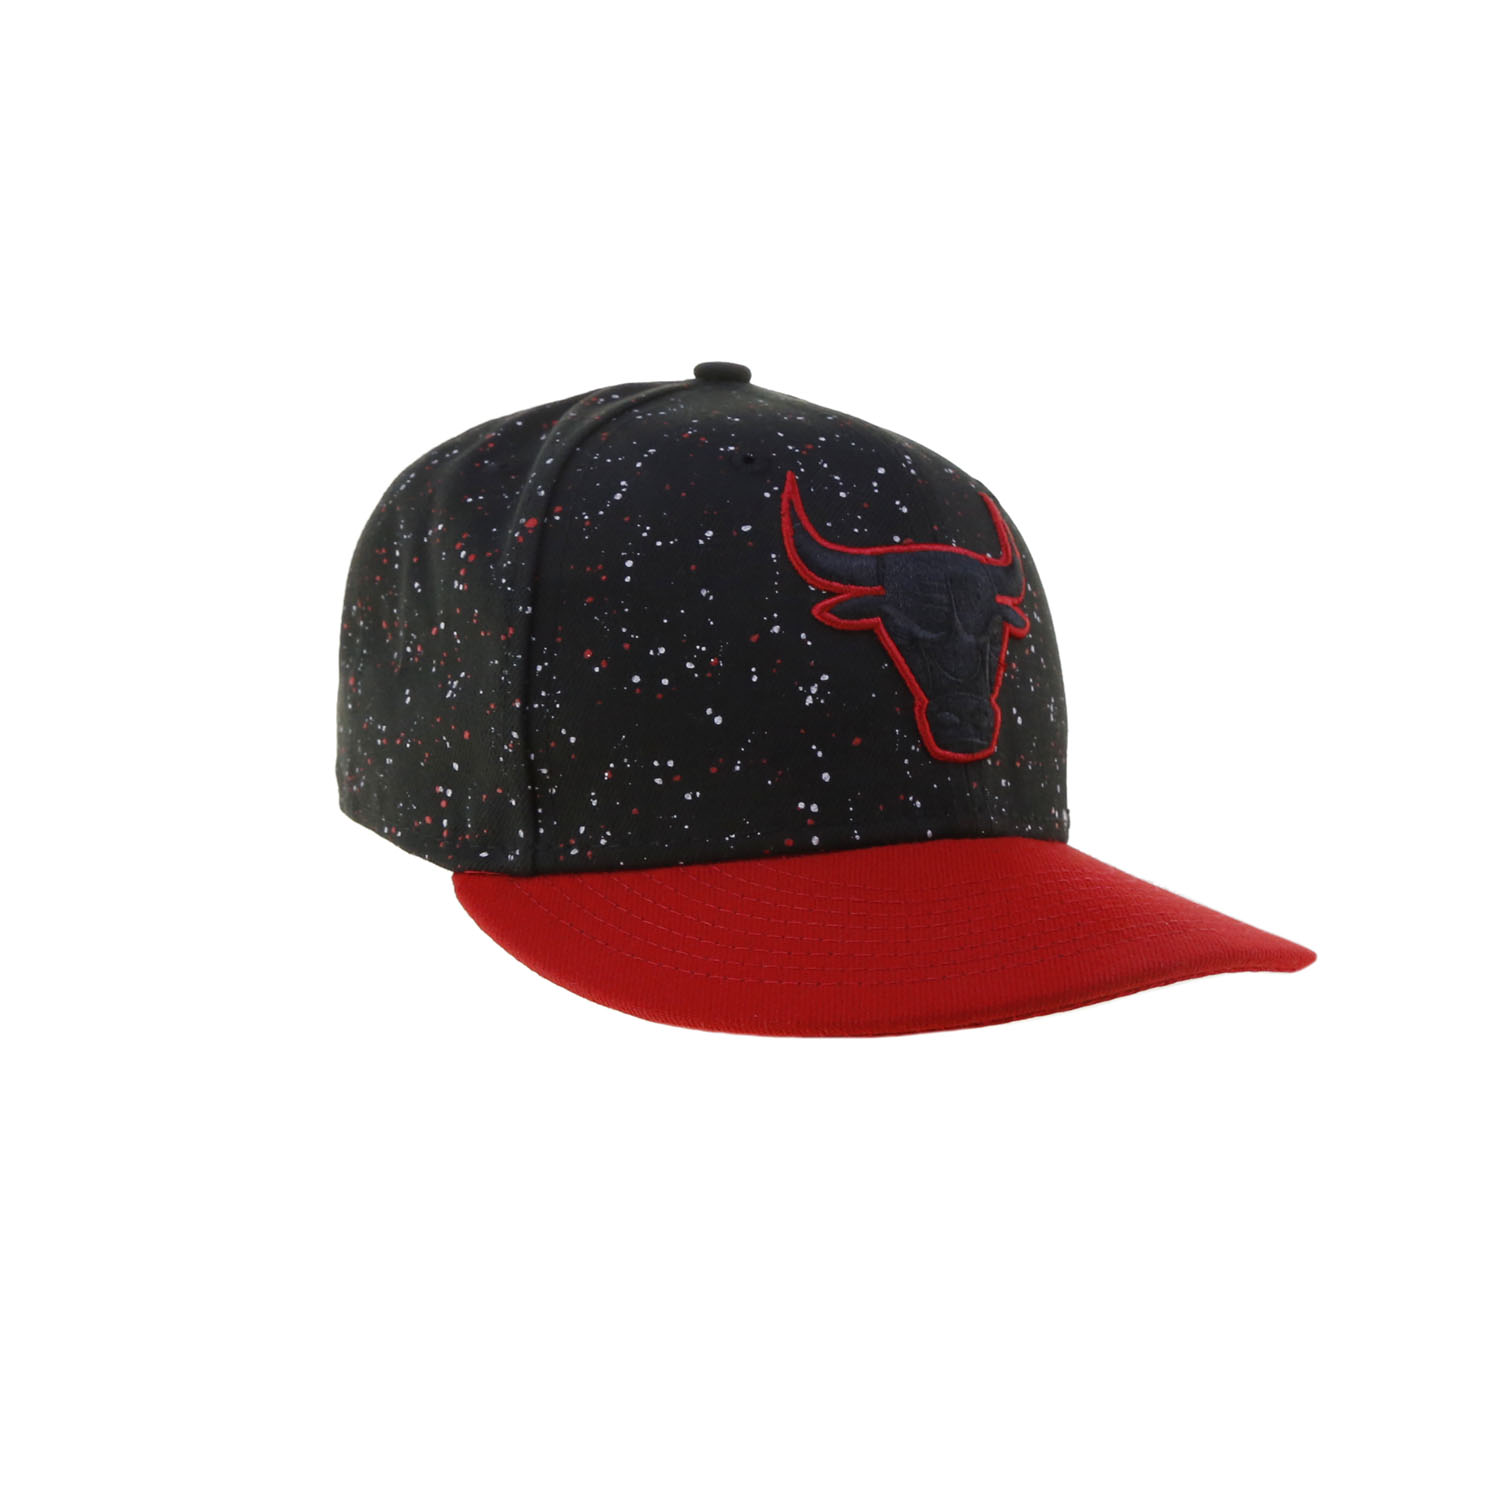 New Era NBA Splatter Chicago Bulls Cap ( 11047987 ) αξεσουάρ   καπέλα